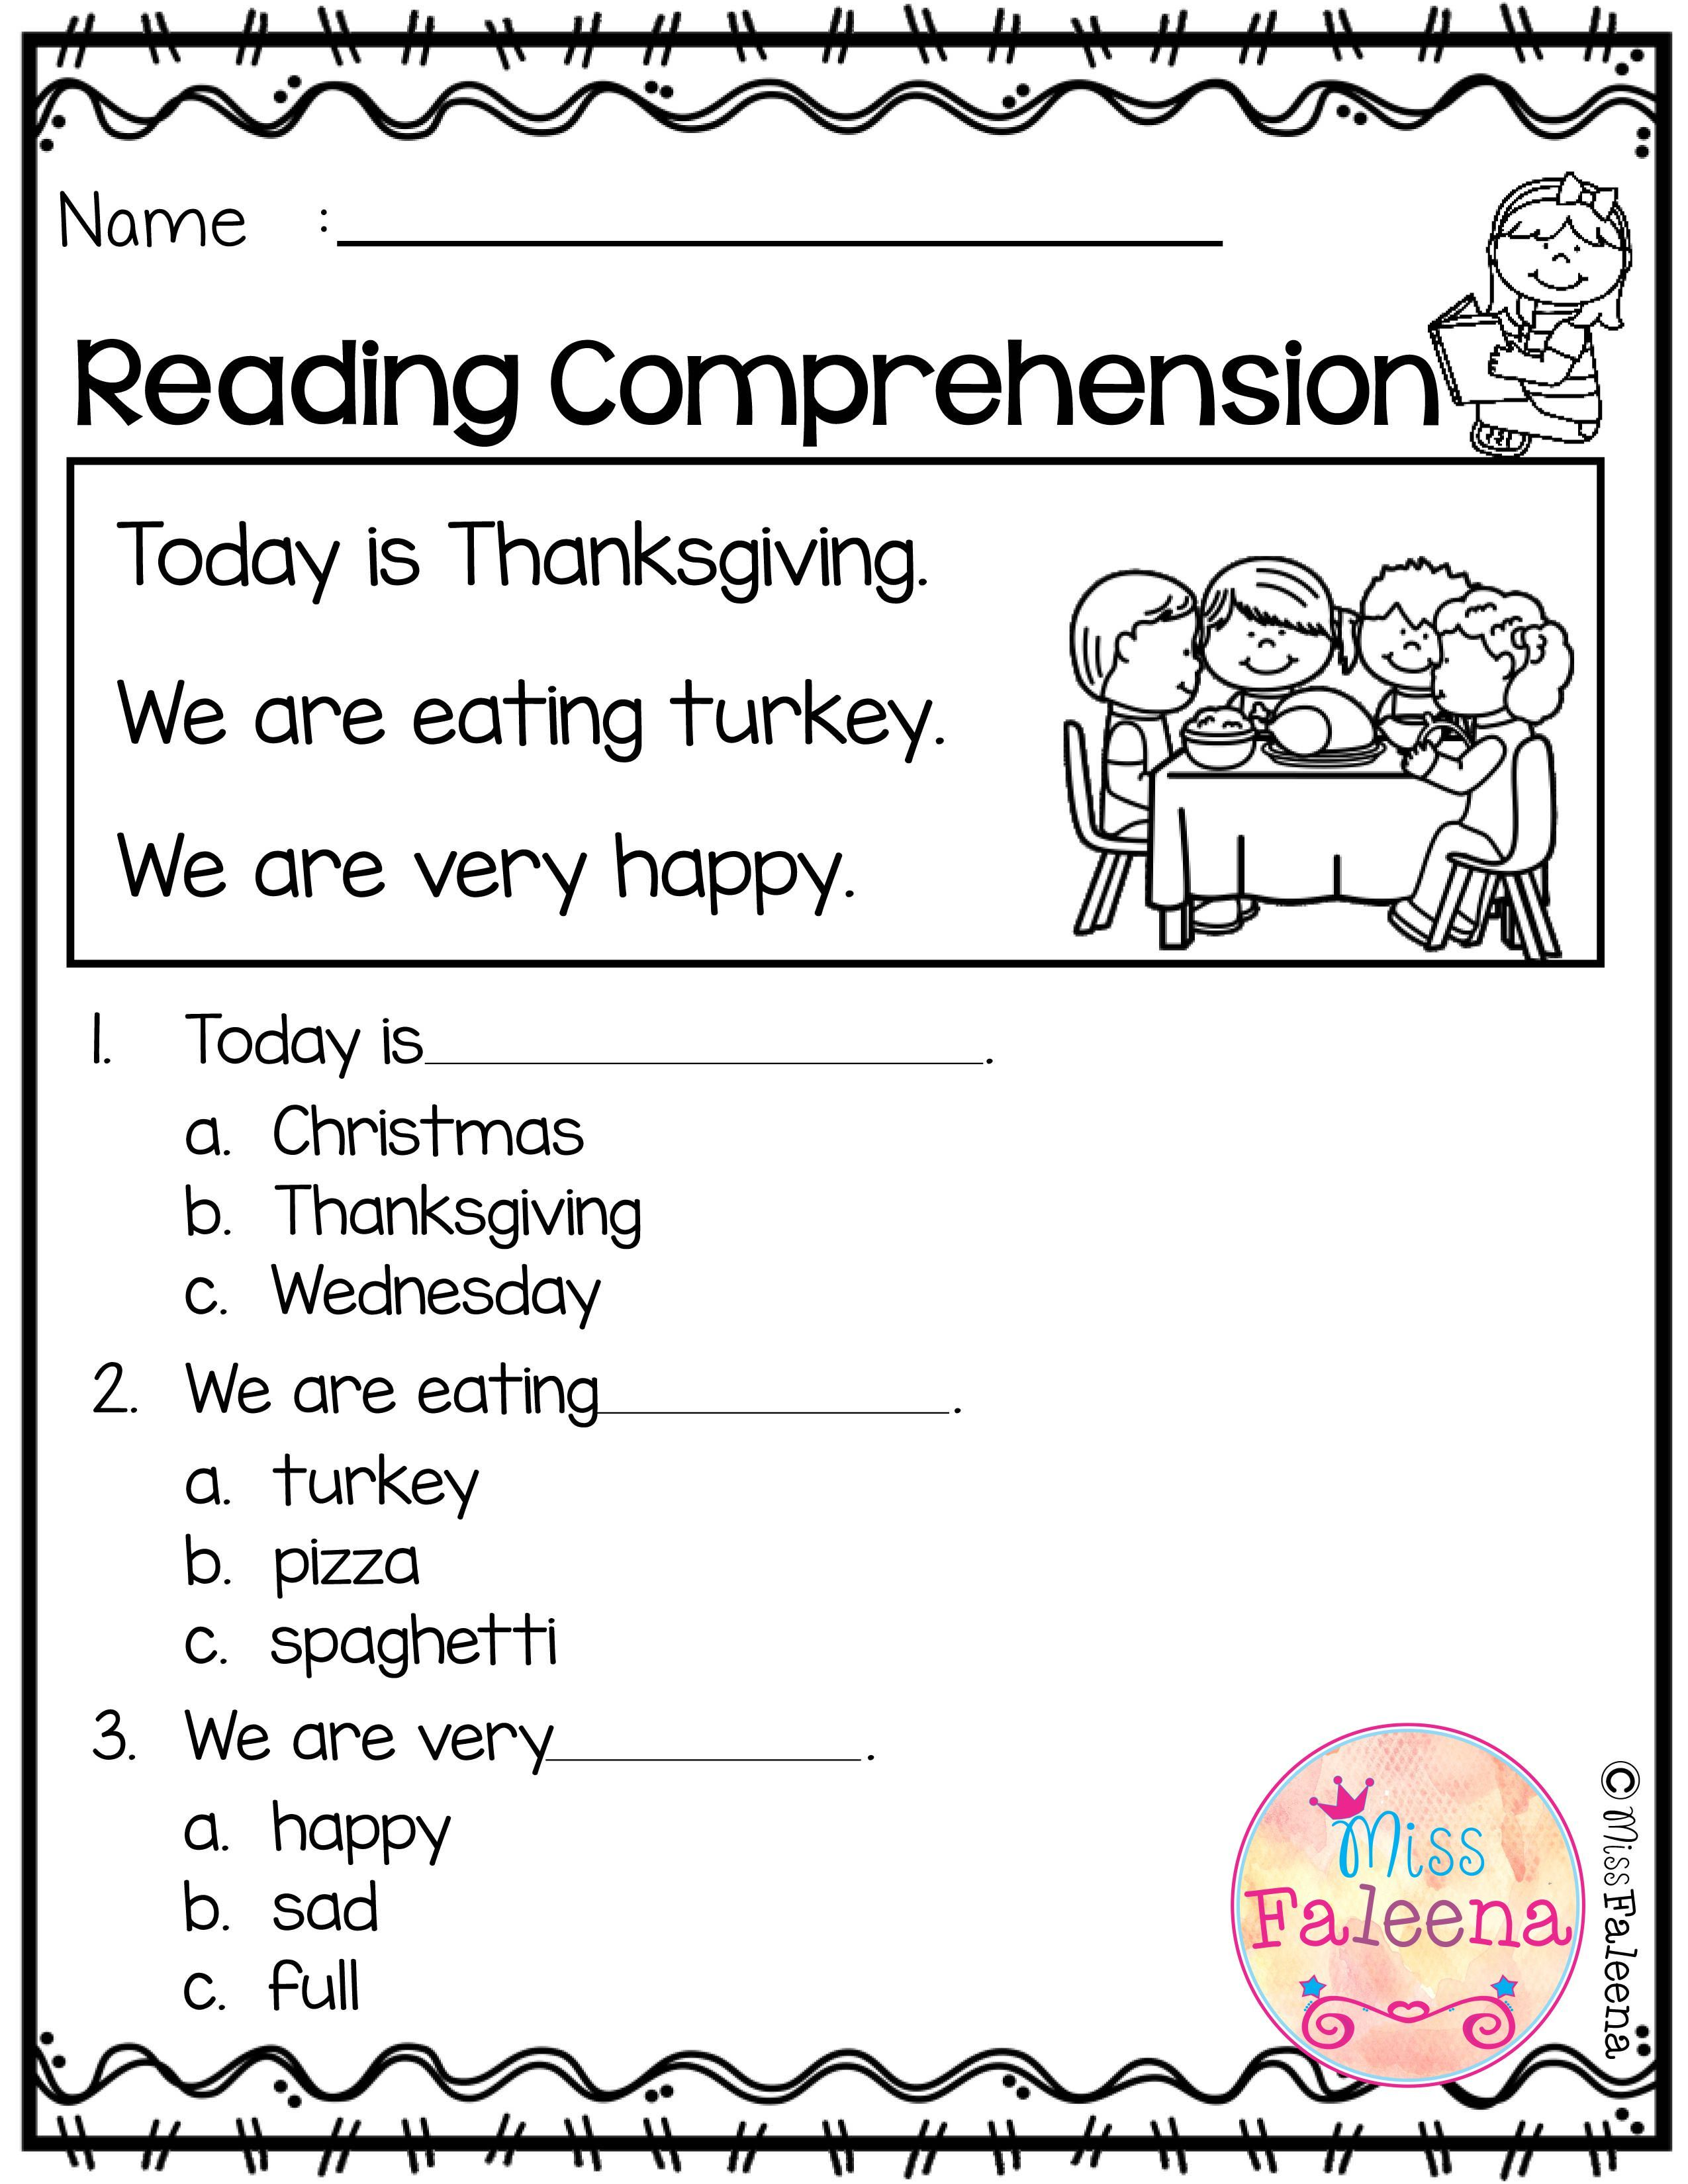 4th Grade Reading Comprehension Worksheets Thanksgiving   Printable  Worksheets and Activities for Teachers [ 3300 x 2550 Pixel ]